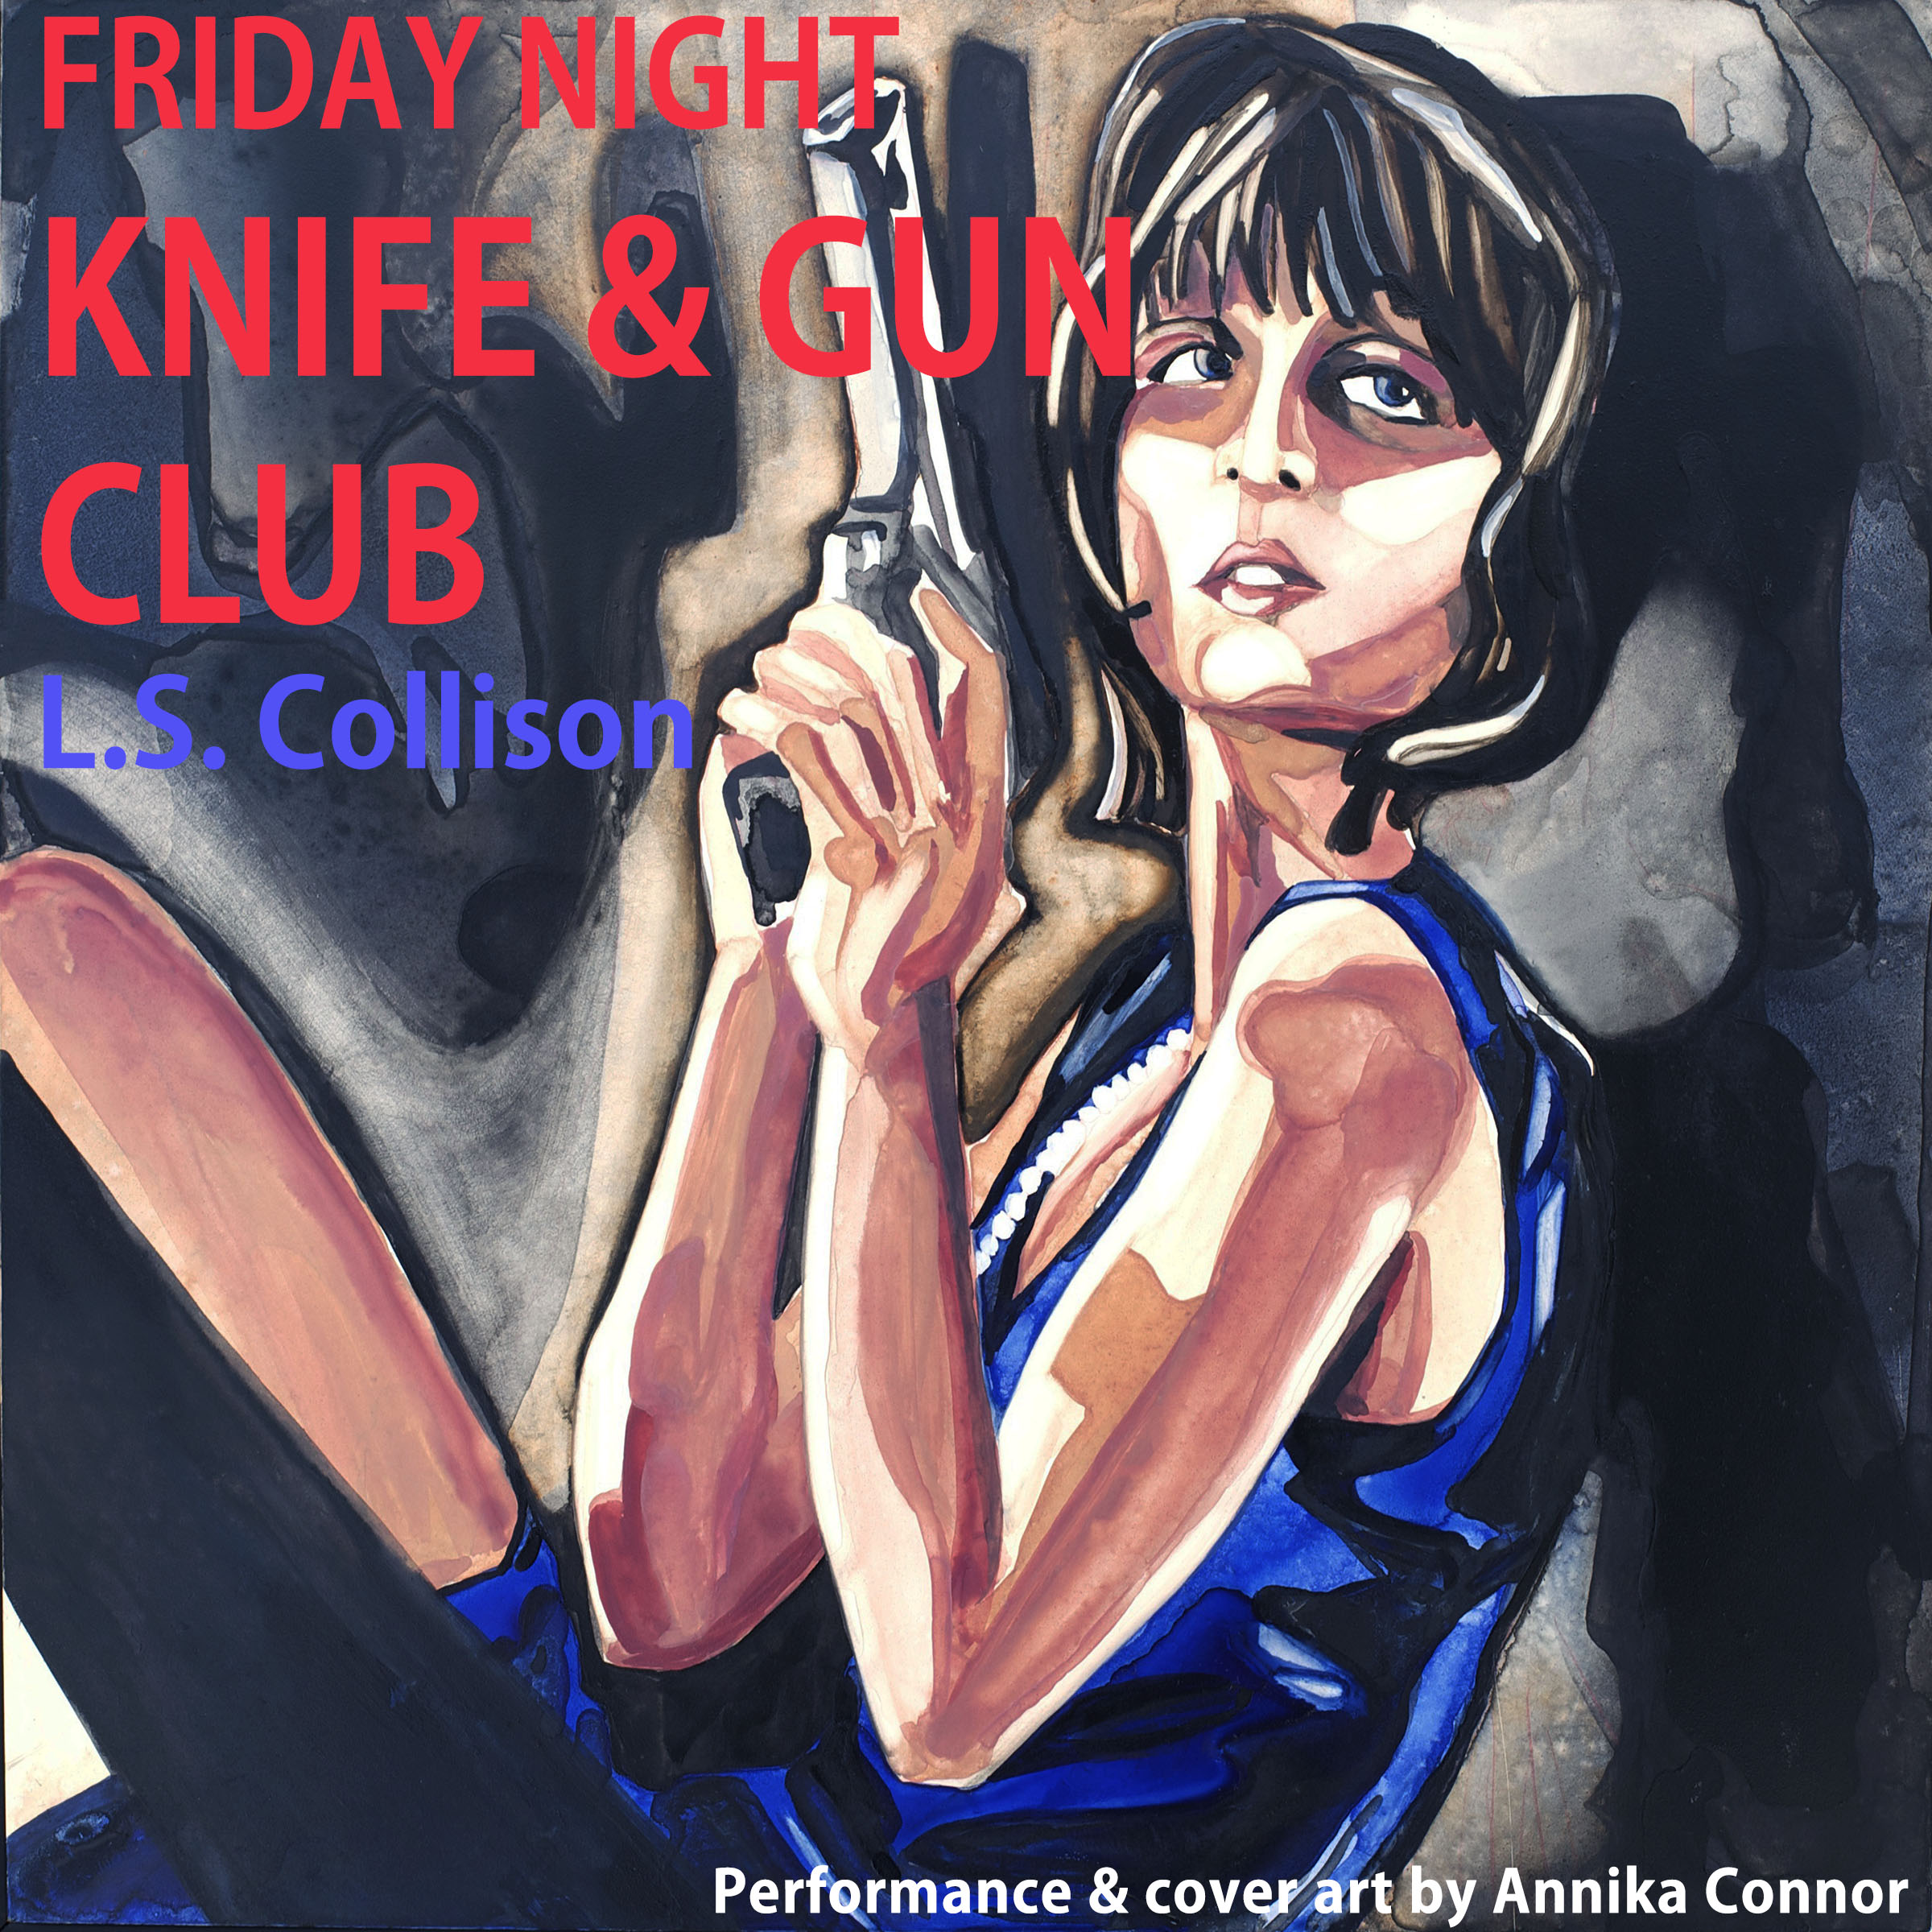 F riday Night Knife & Gun Club  written by L.S. Collison, narration and cover art by Annika Connor..  For the full book go  here .